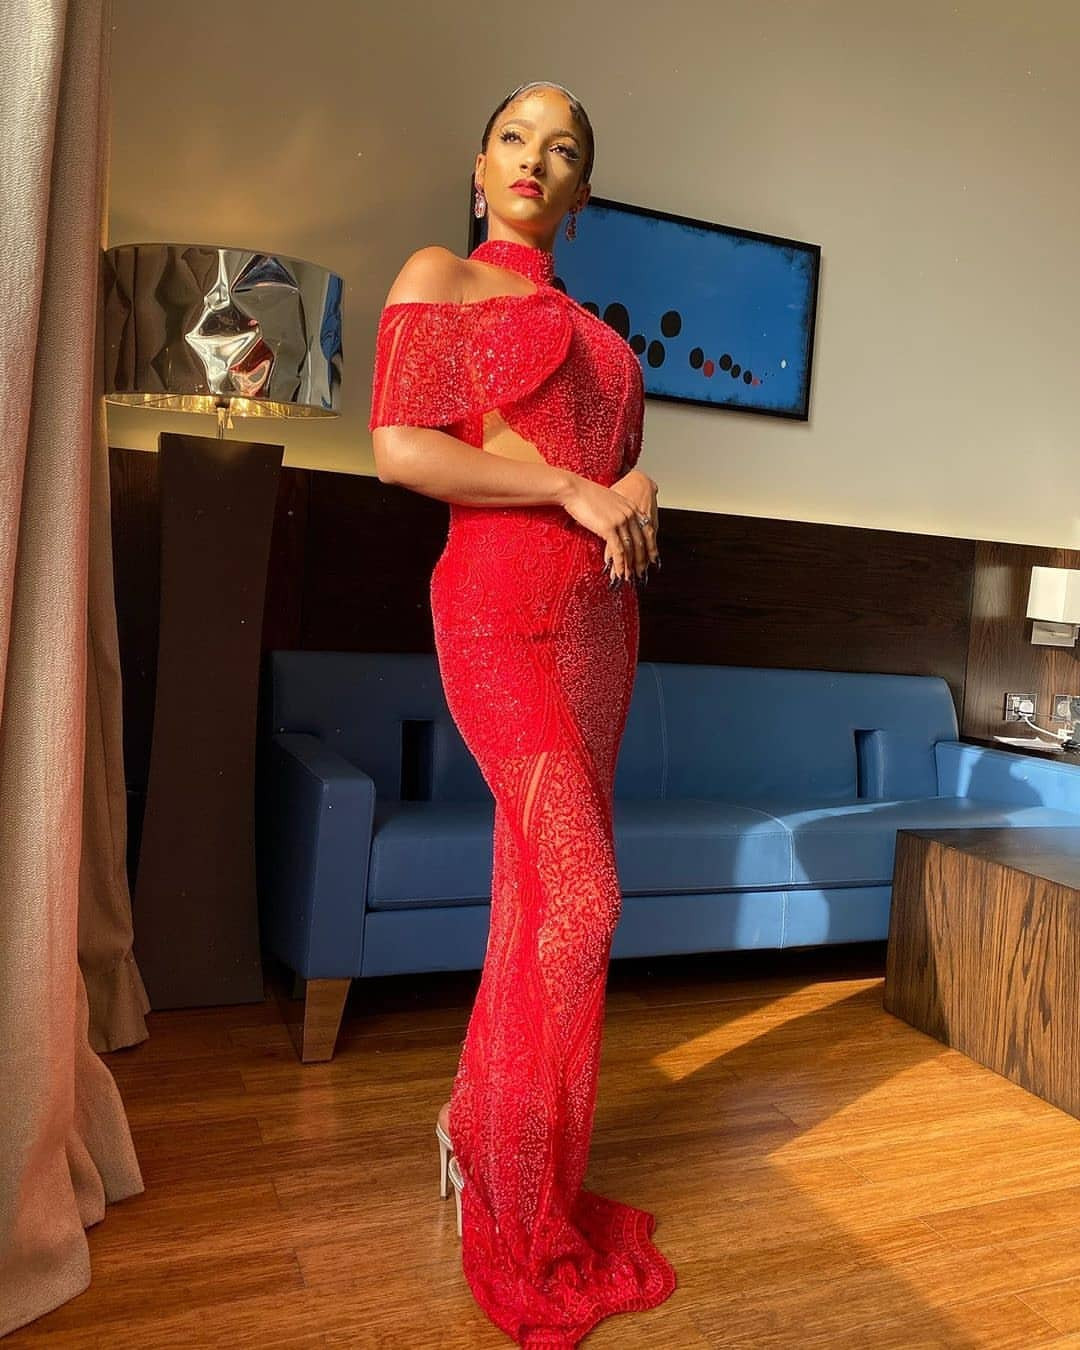 PHOTOS OF CELEBRITIES FROM THE AMVCA AWARDS